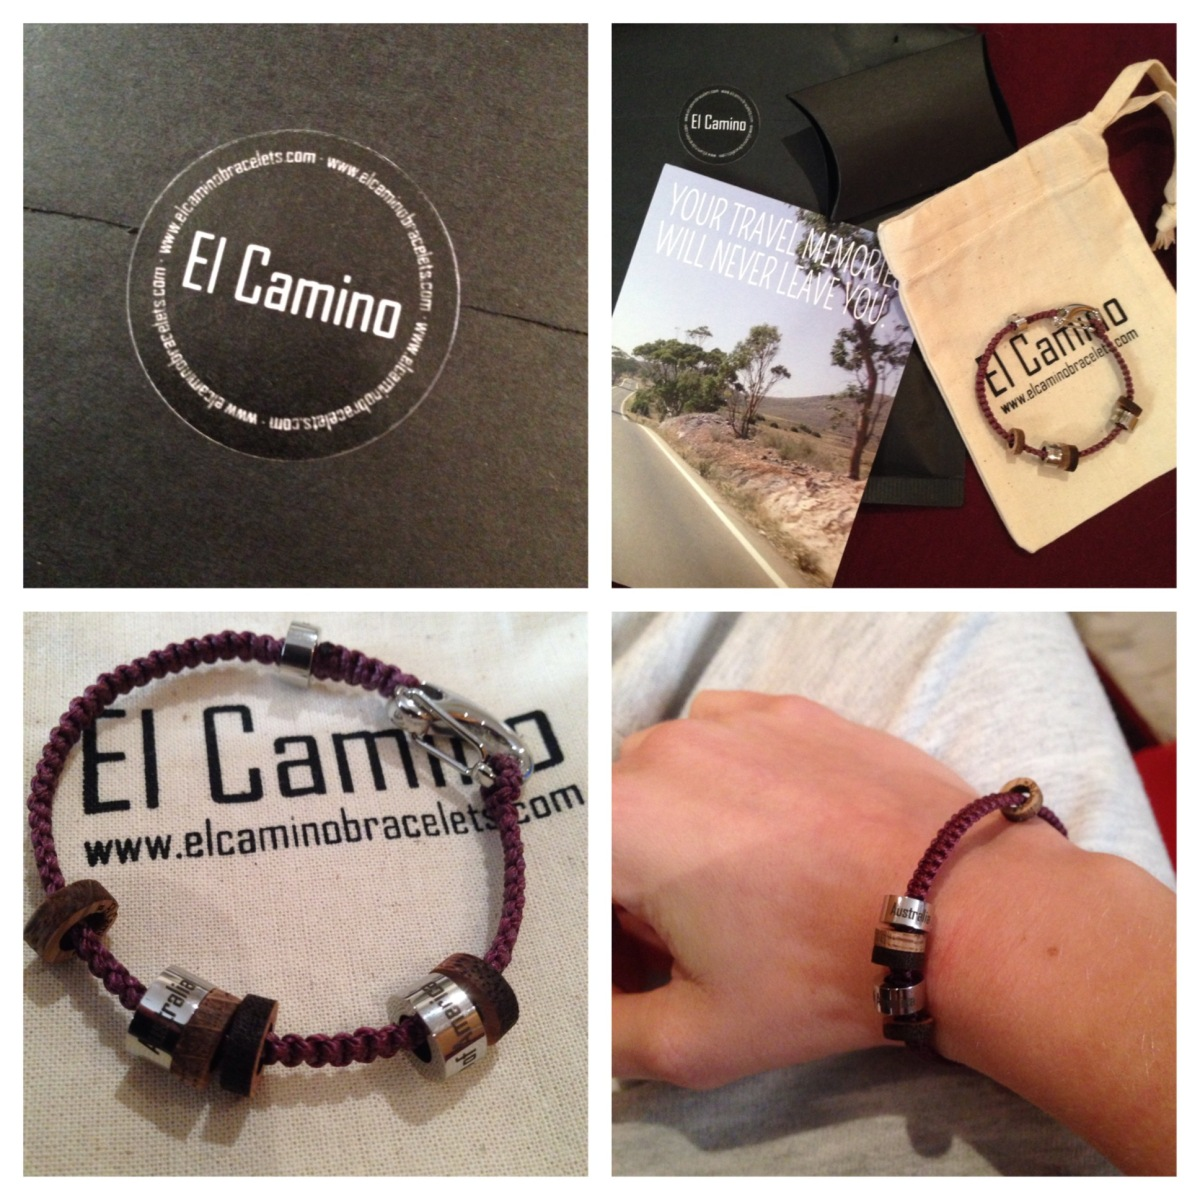 A Product Review: El Camino Bracelet